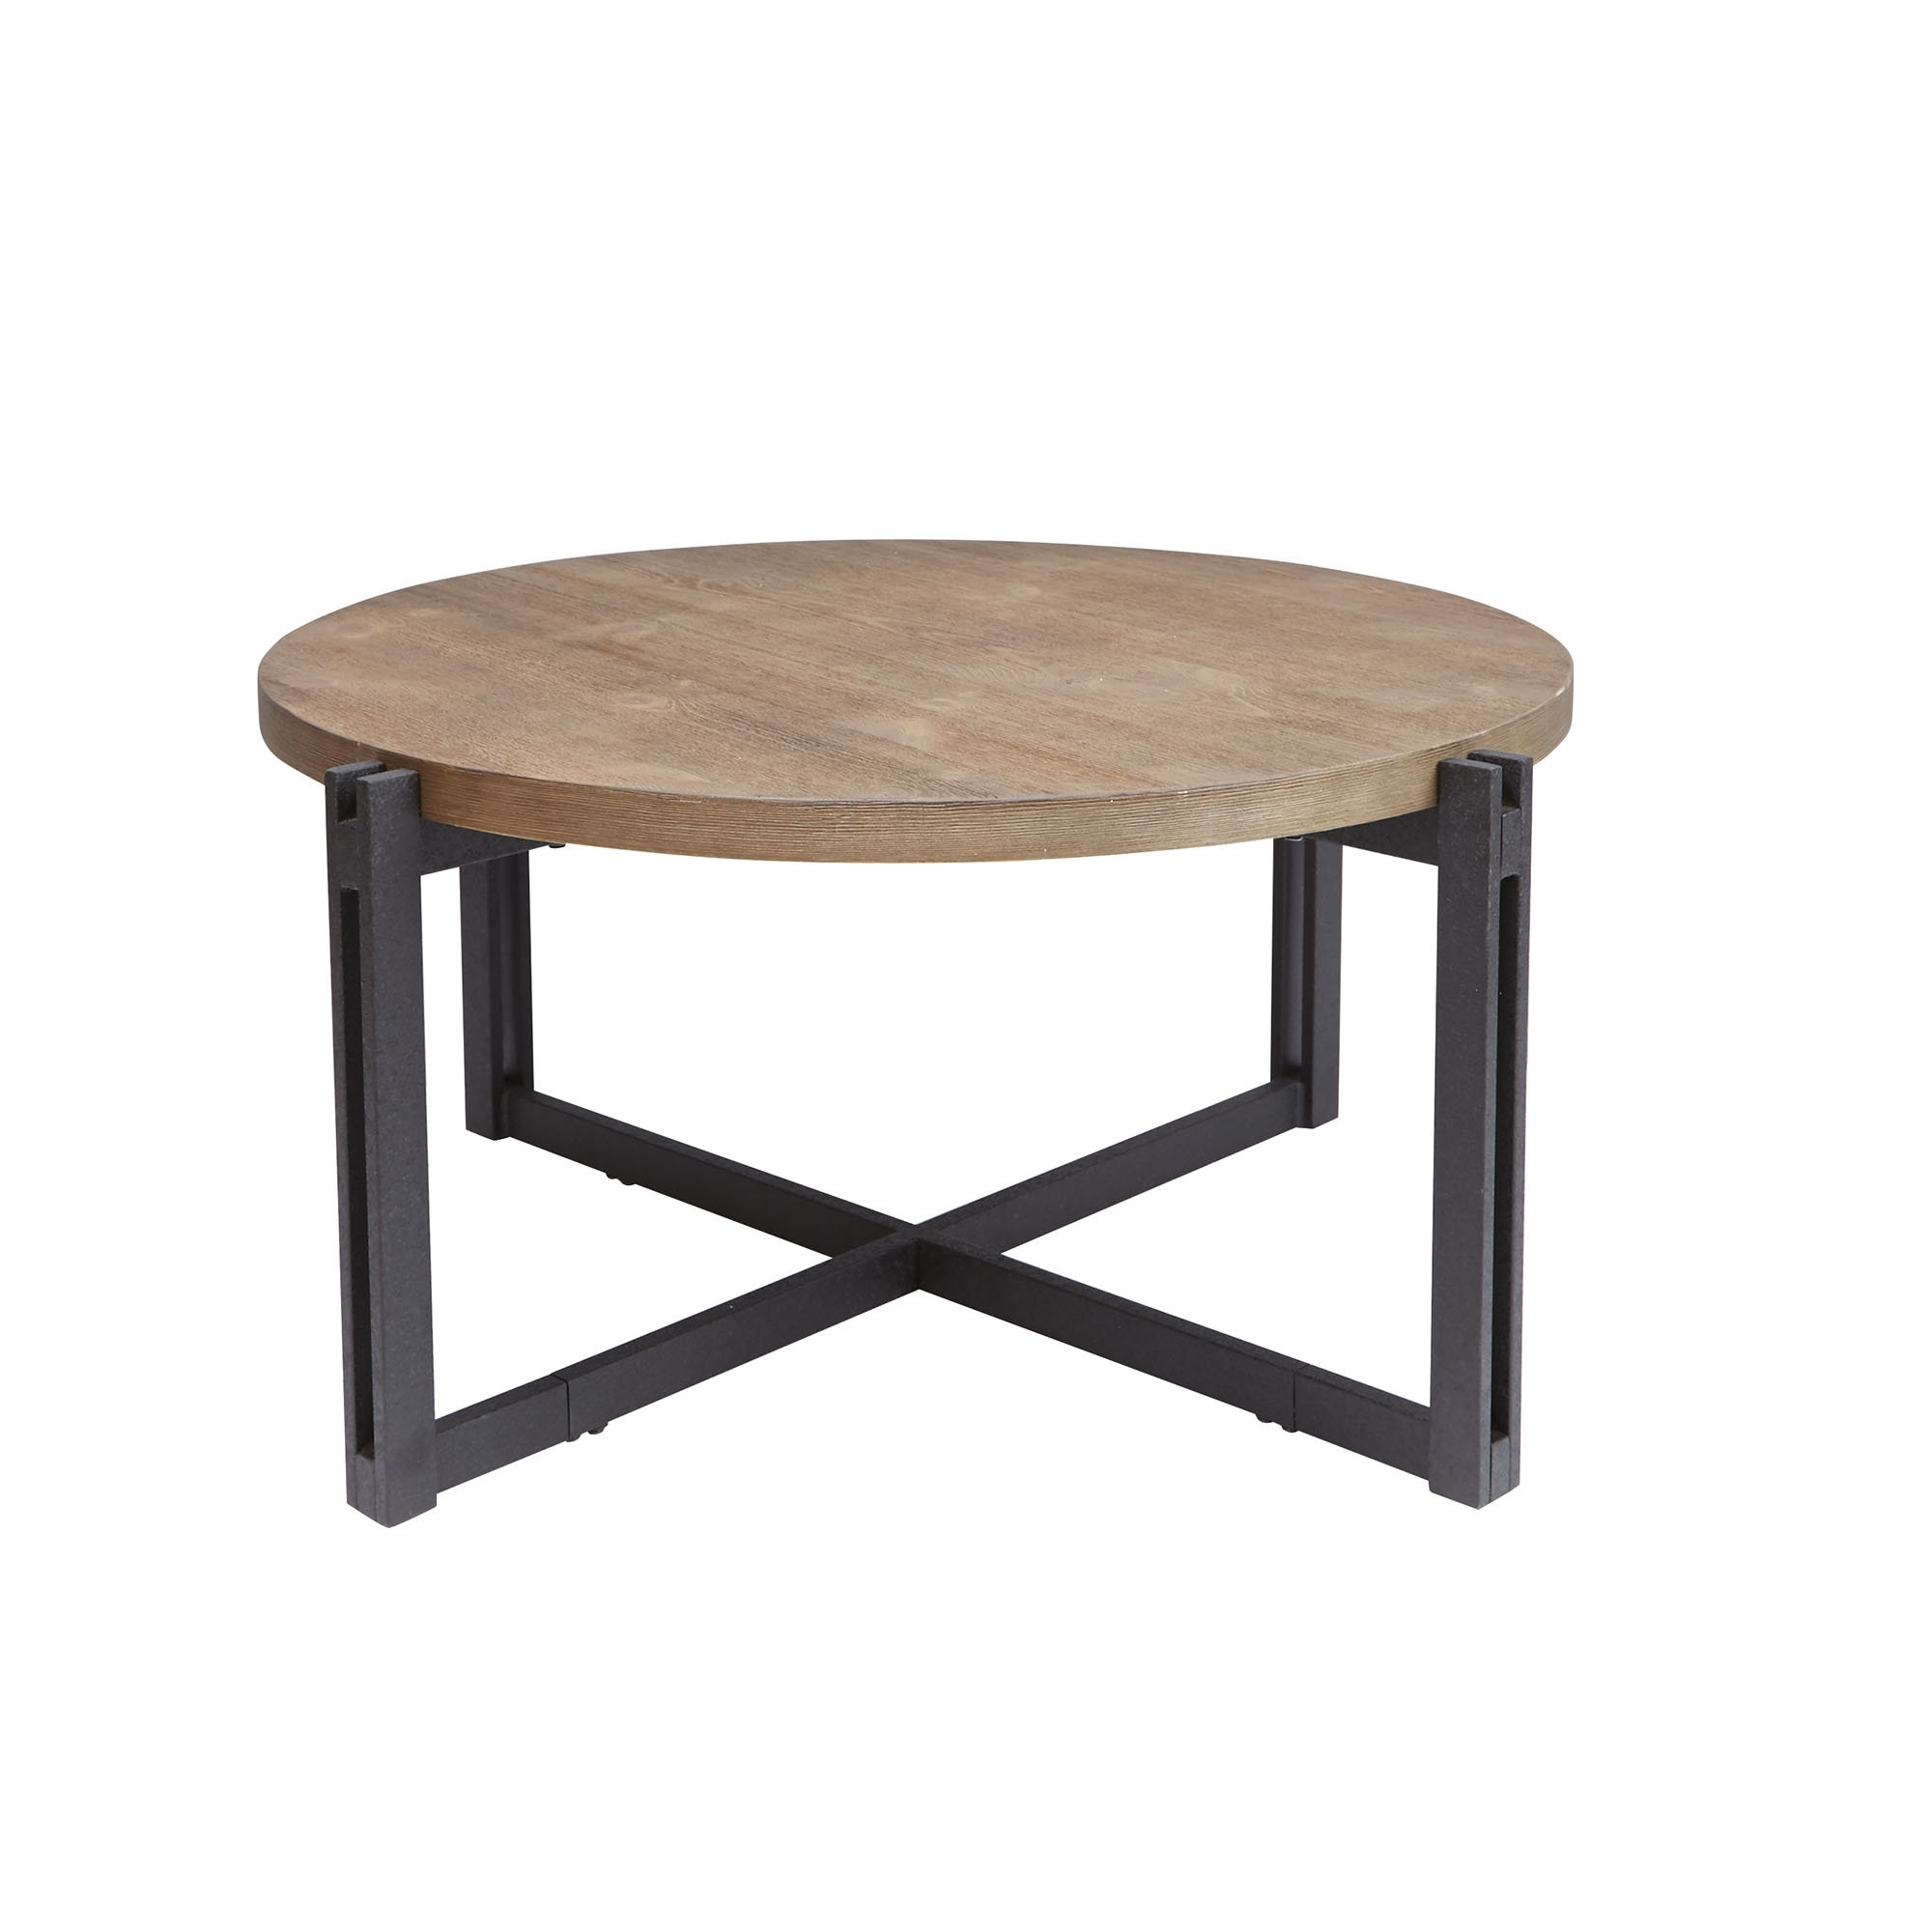 Best And Newest Grant Lift Top Cocktail Tables With Casters With Ivy Bronx Baran Coffee Table & Reviews (View 17 of 20)